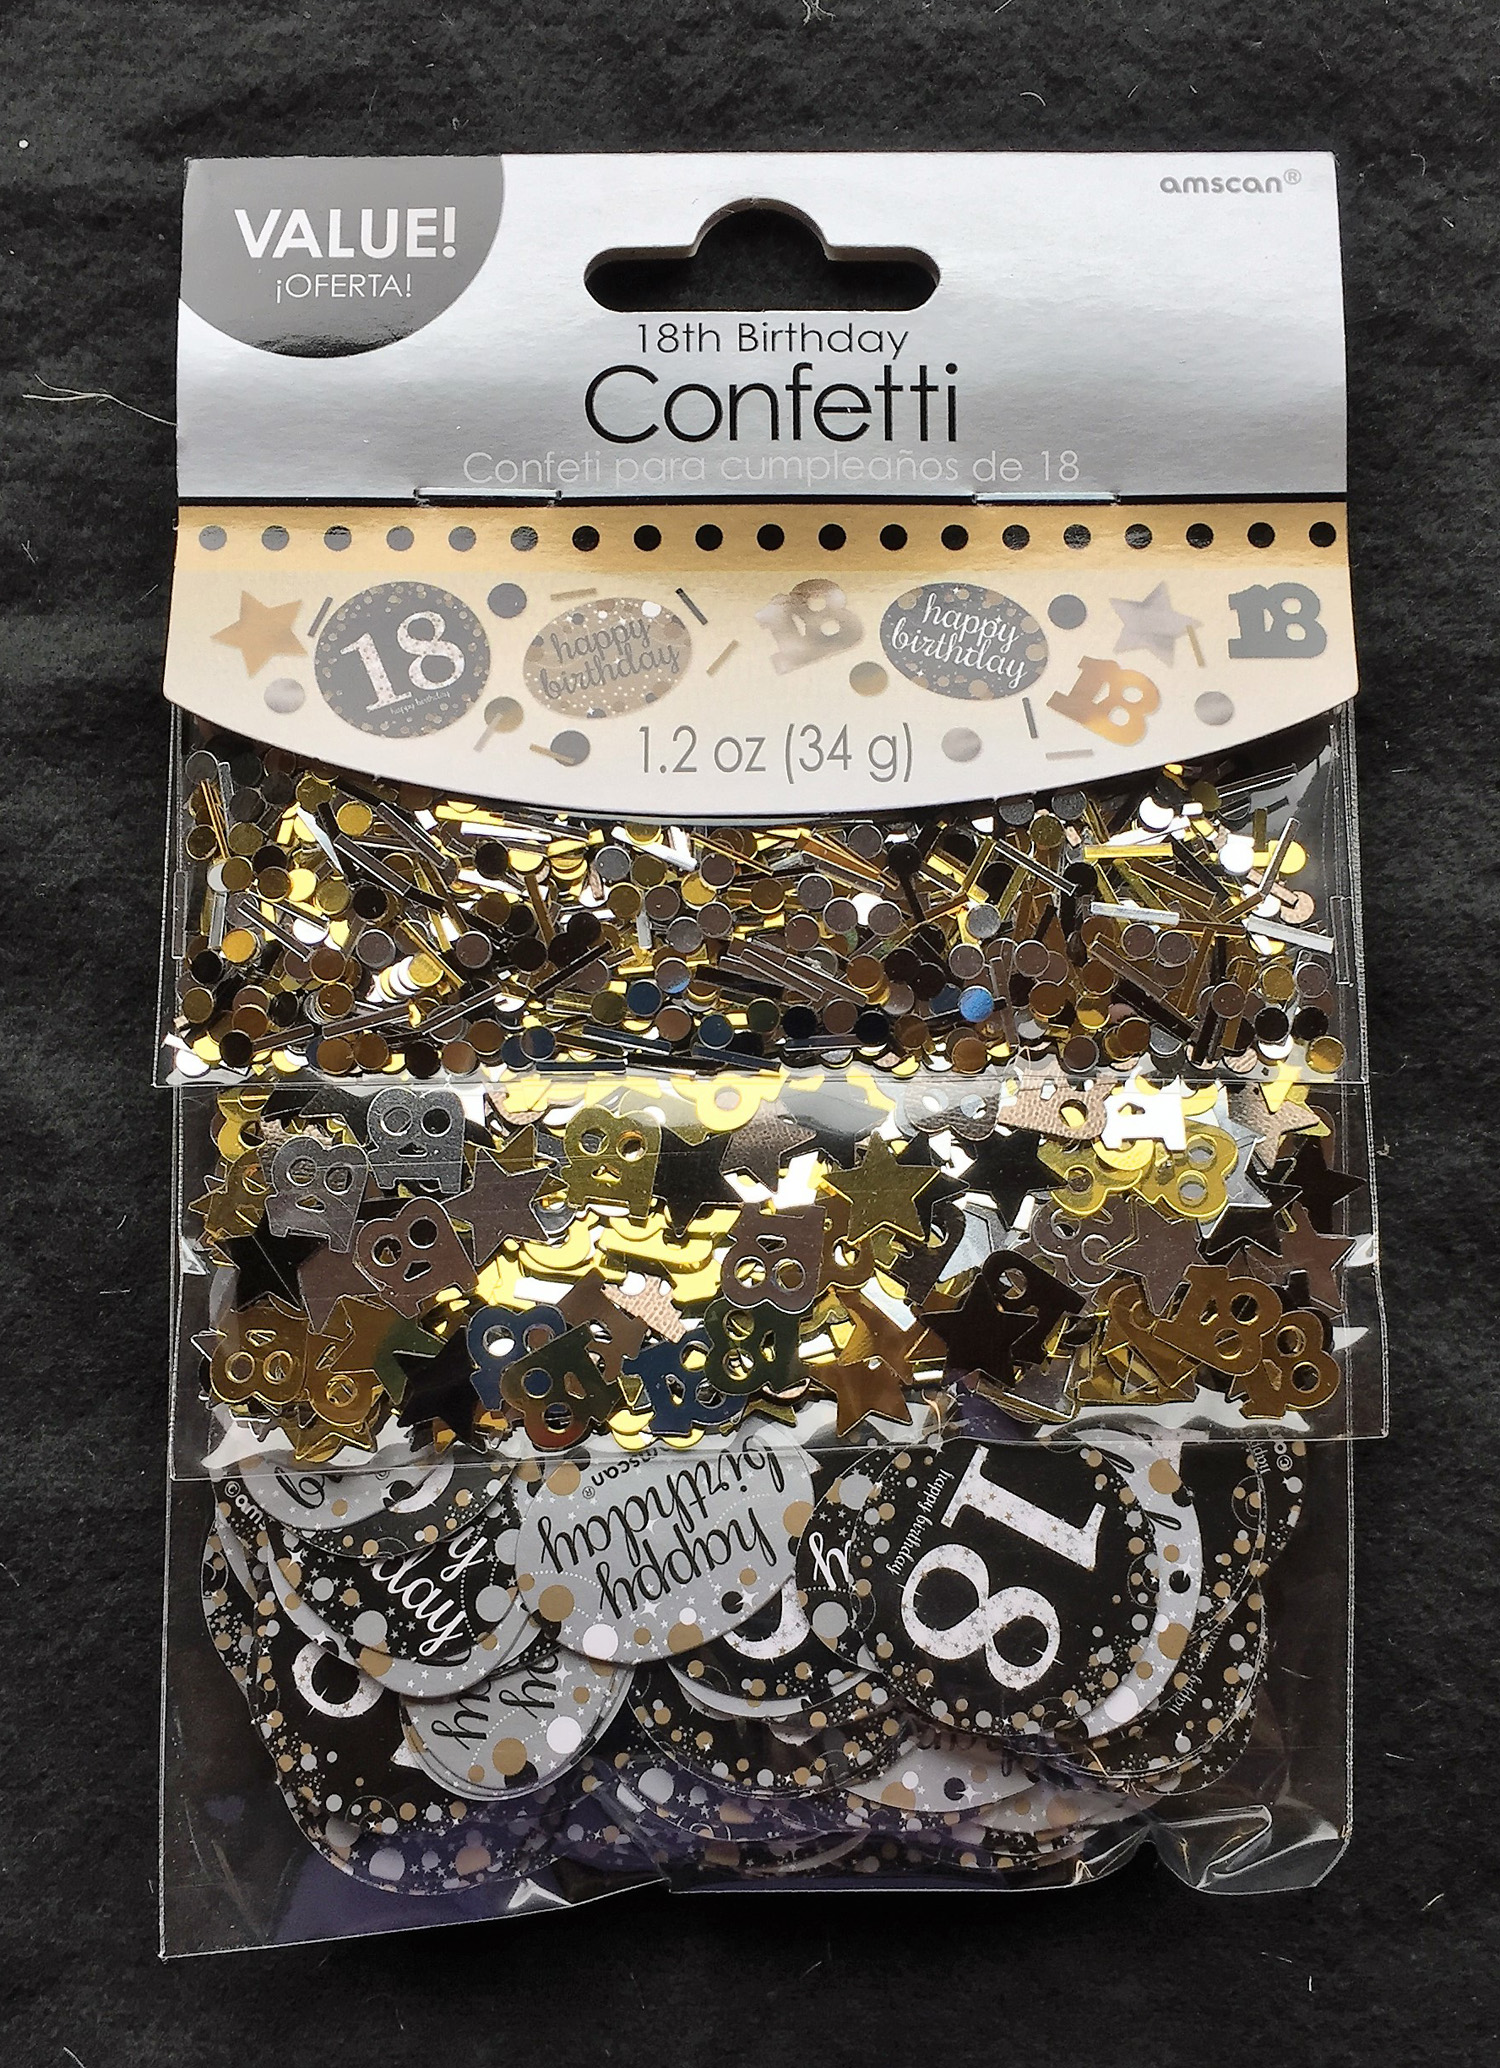 18th Birthday Confetti Table Decoration Sprinkle Black Silver Gold Age 18 Party